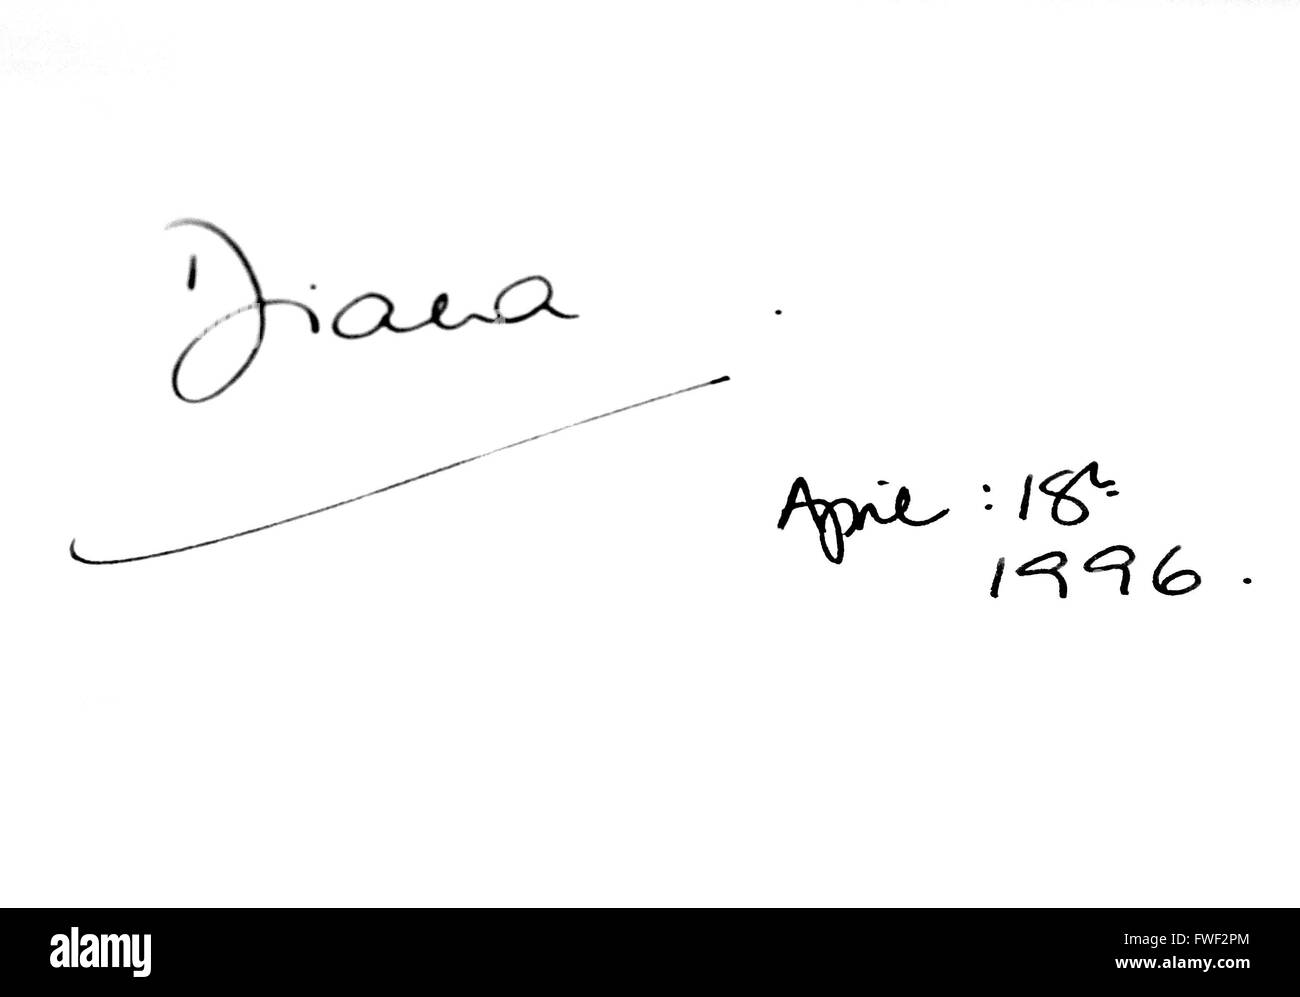 Princess Diana's signature in Madame Tussaud's guestbook at 42nd Street in New York City. USA. please use - Stock Image